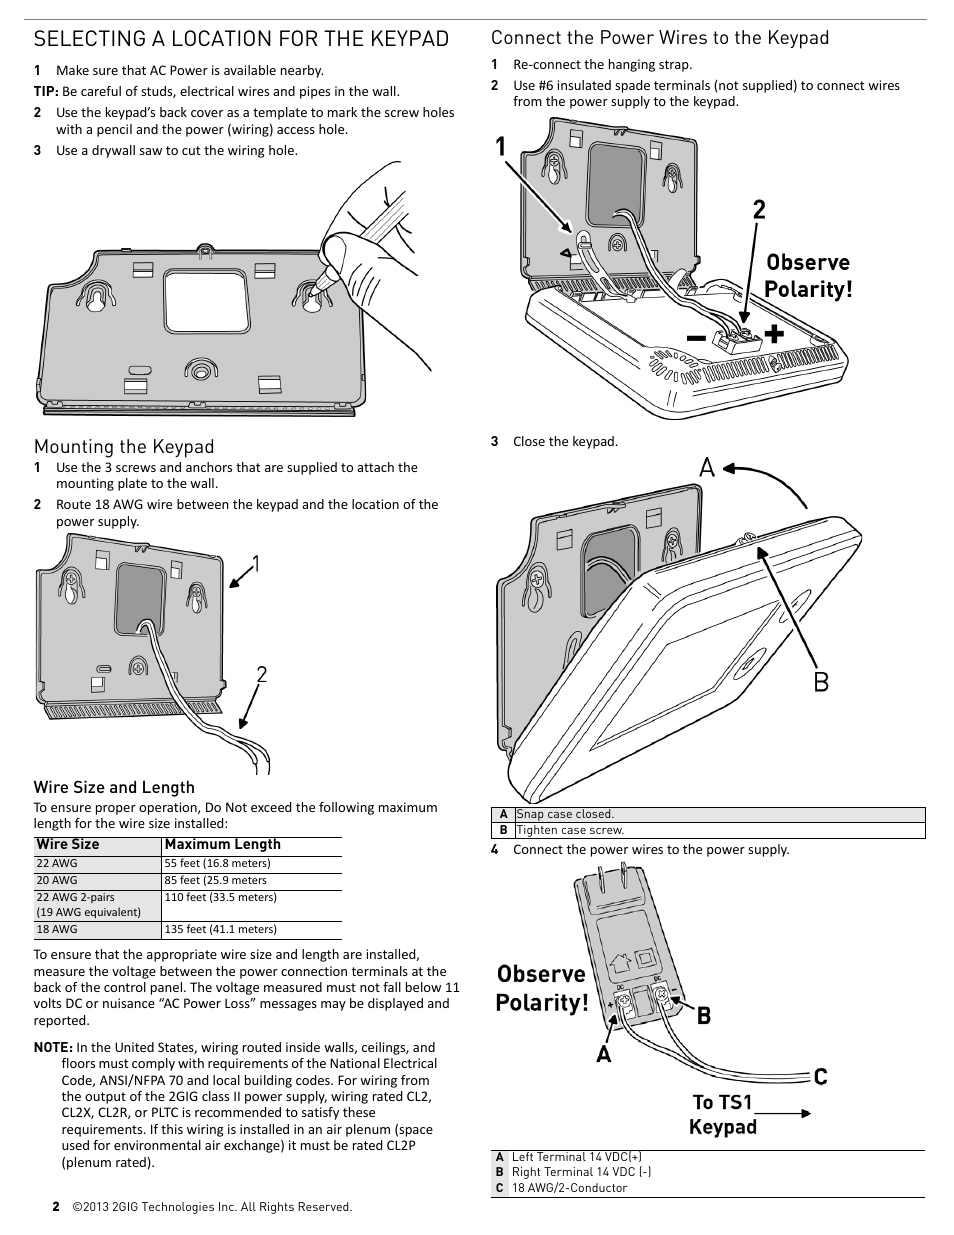 medium resolution of selecting a location for the keypad mounting the keypad connect the power wires to